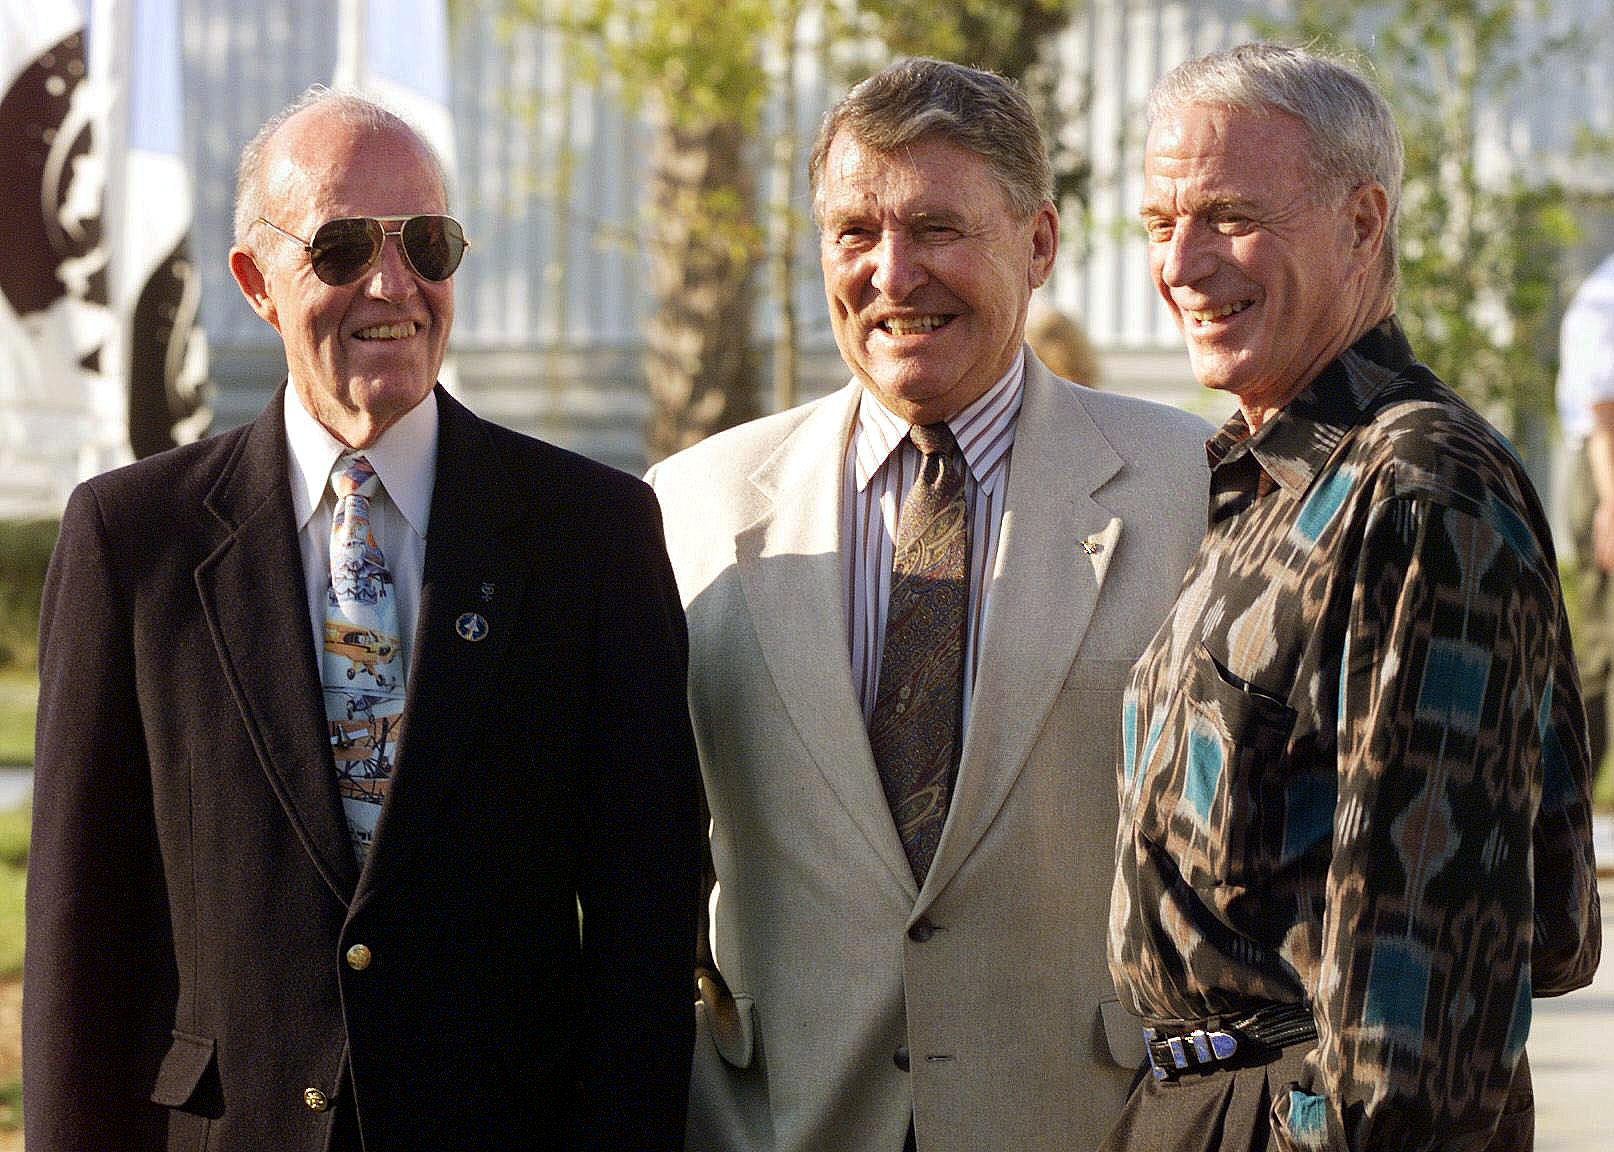 Mercury 7 astronauts Gordon Cooper (from left), Wally Schirra and Carpenter at a press conference at Kennedy Space Center in 1998. The three were in Florida to watch the launch of the Shuttle Discovery, which carried 77-year-old Glenn into orbit